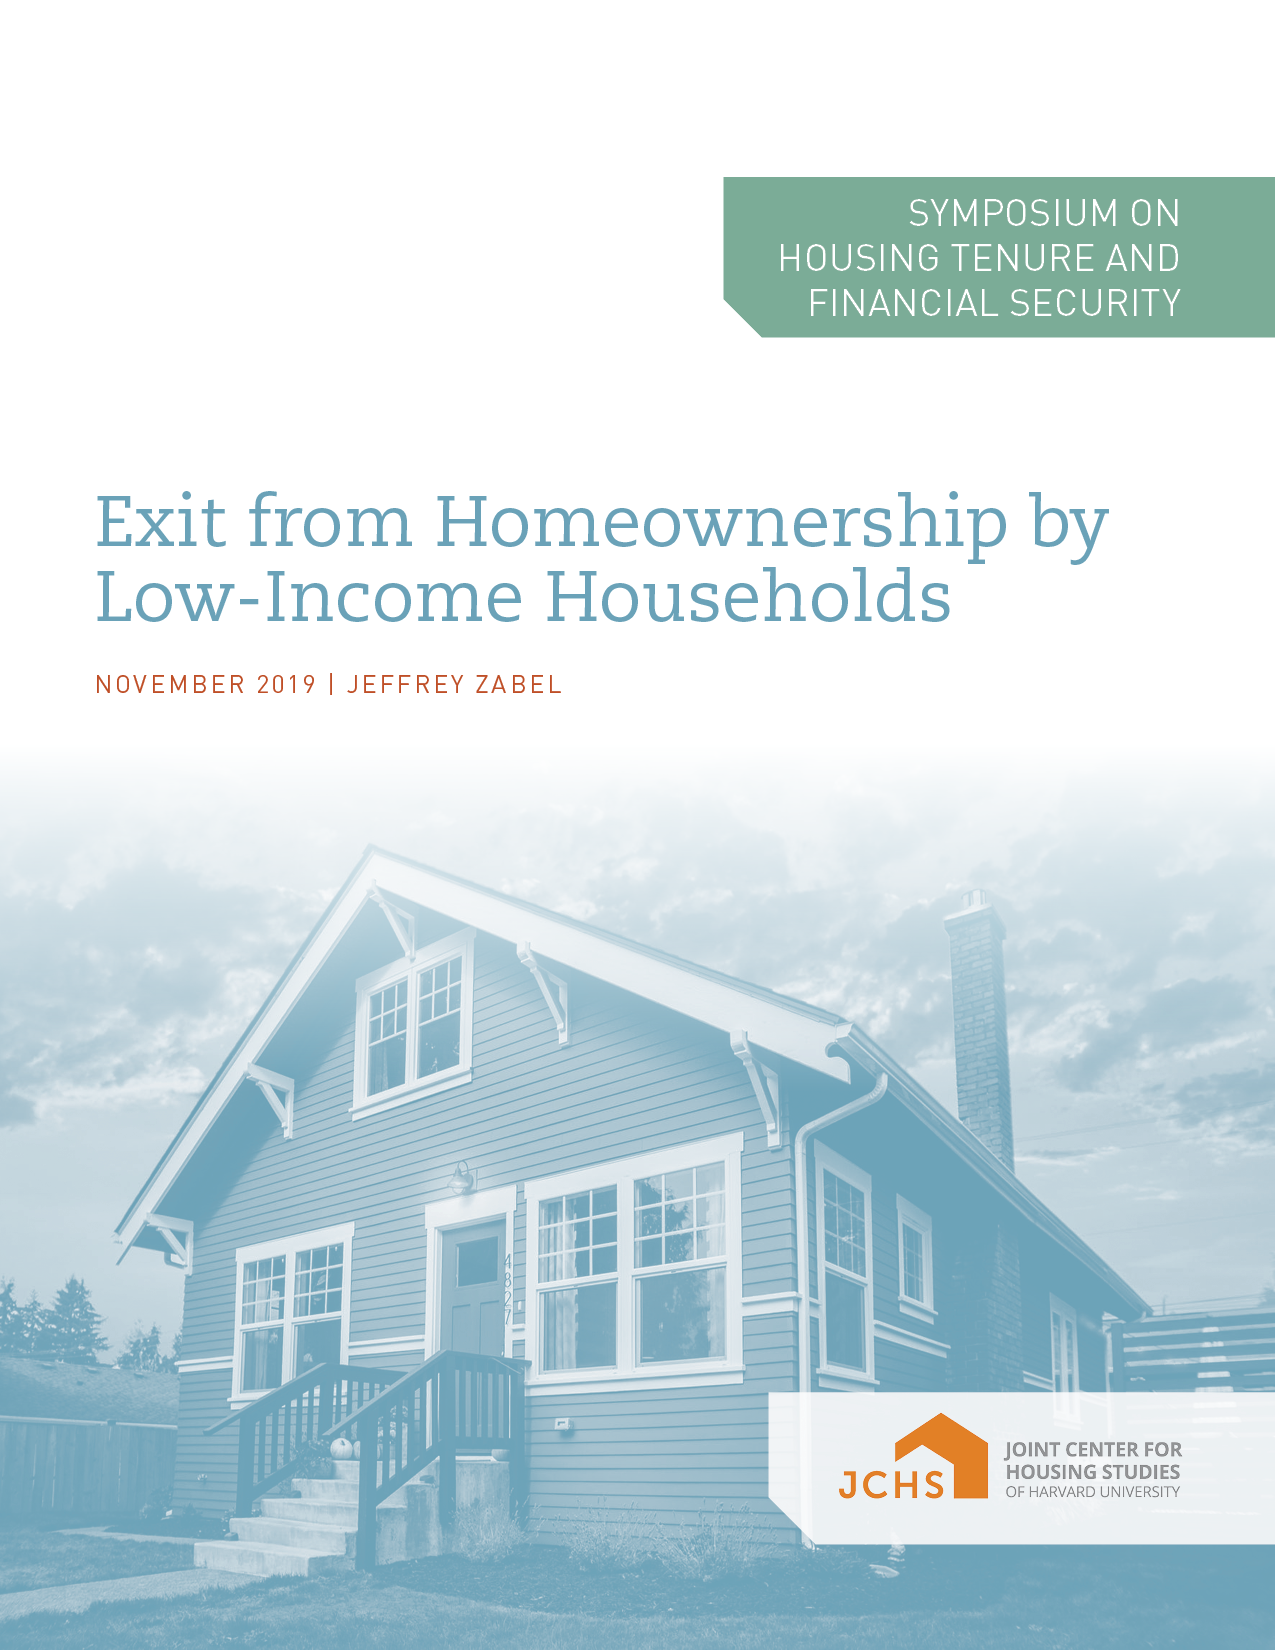 Exit from Homeownership by Low-Income Households